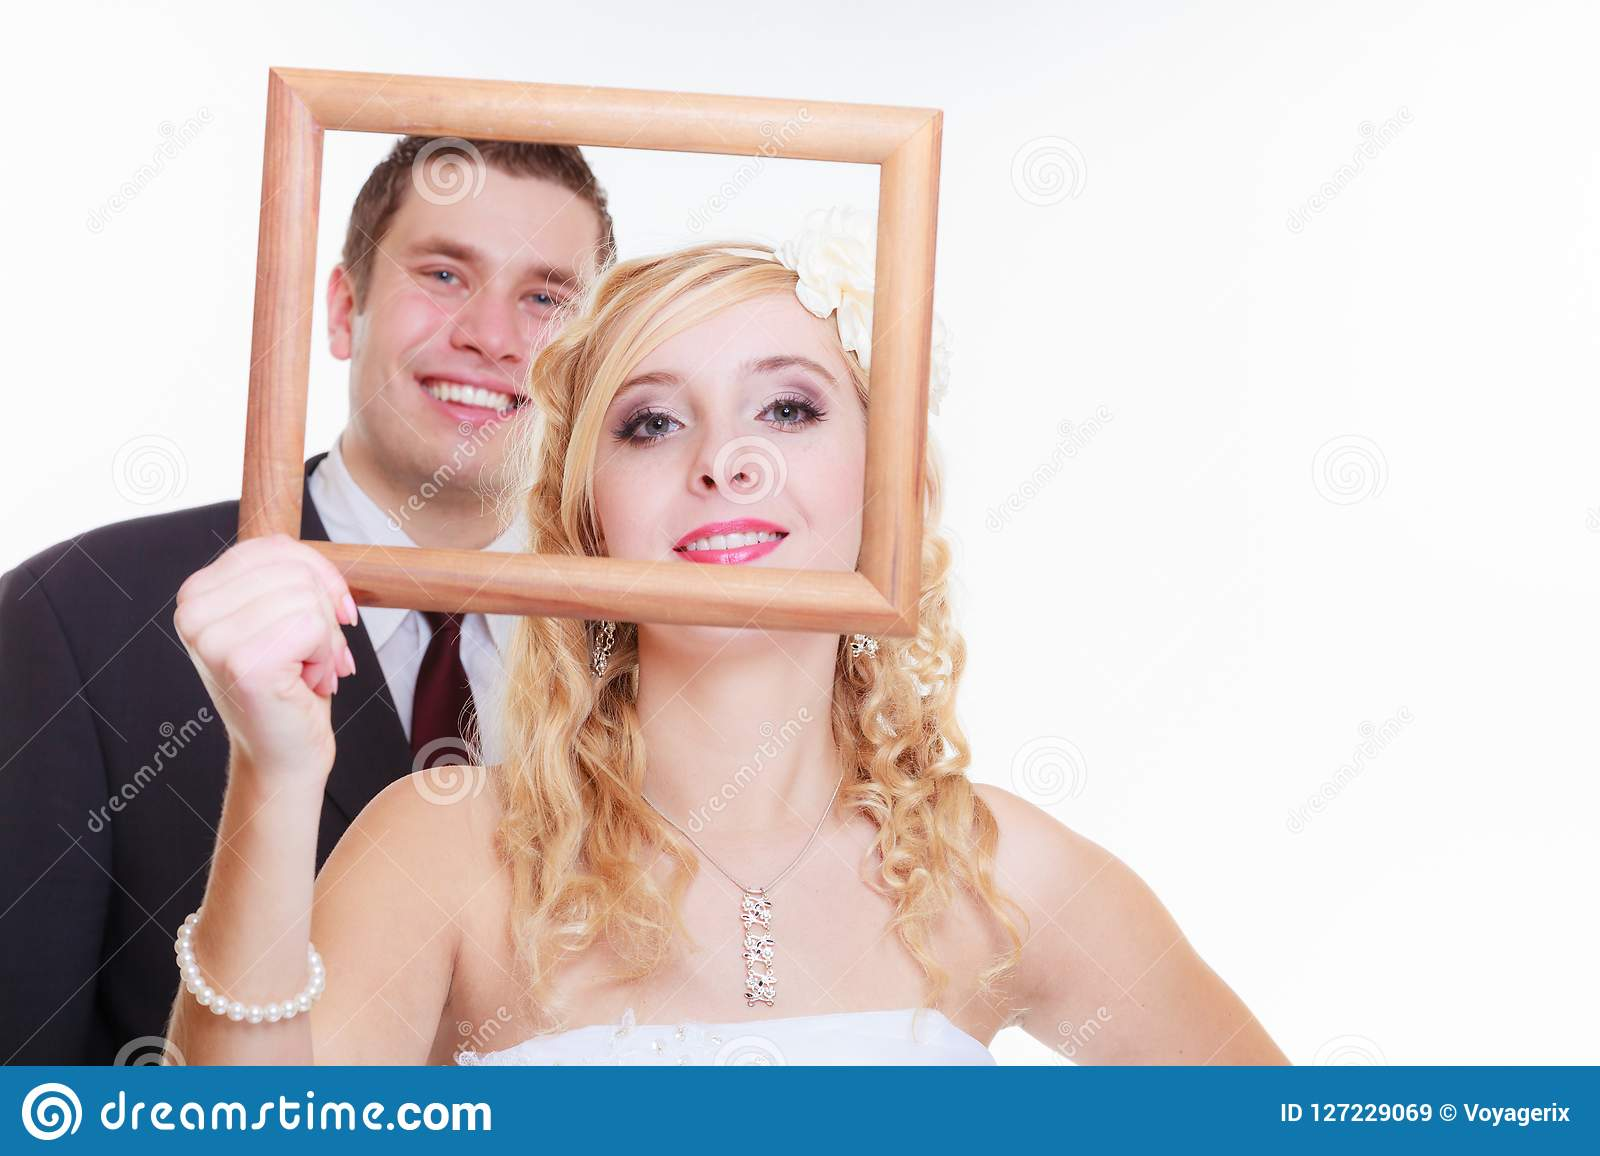 Groom and bride holding empty frame